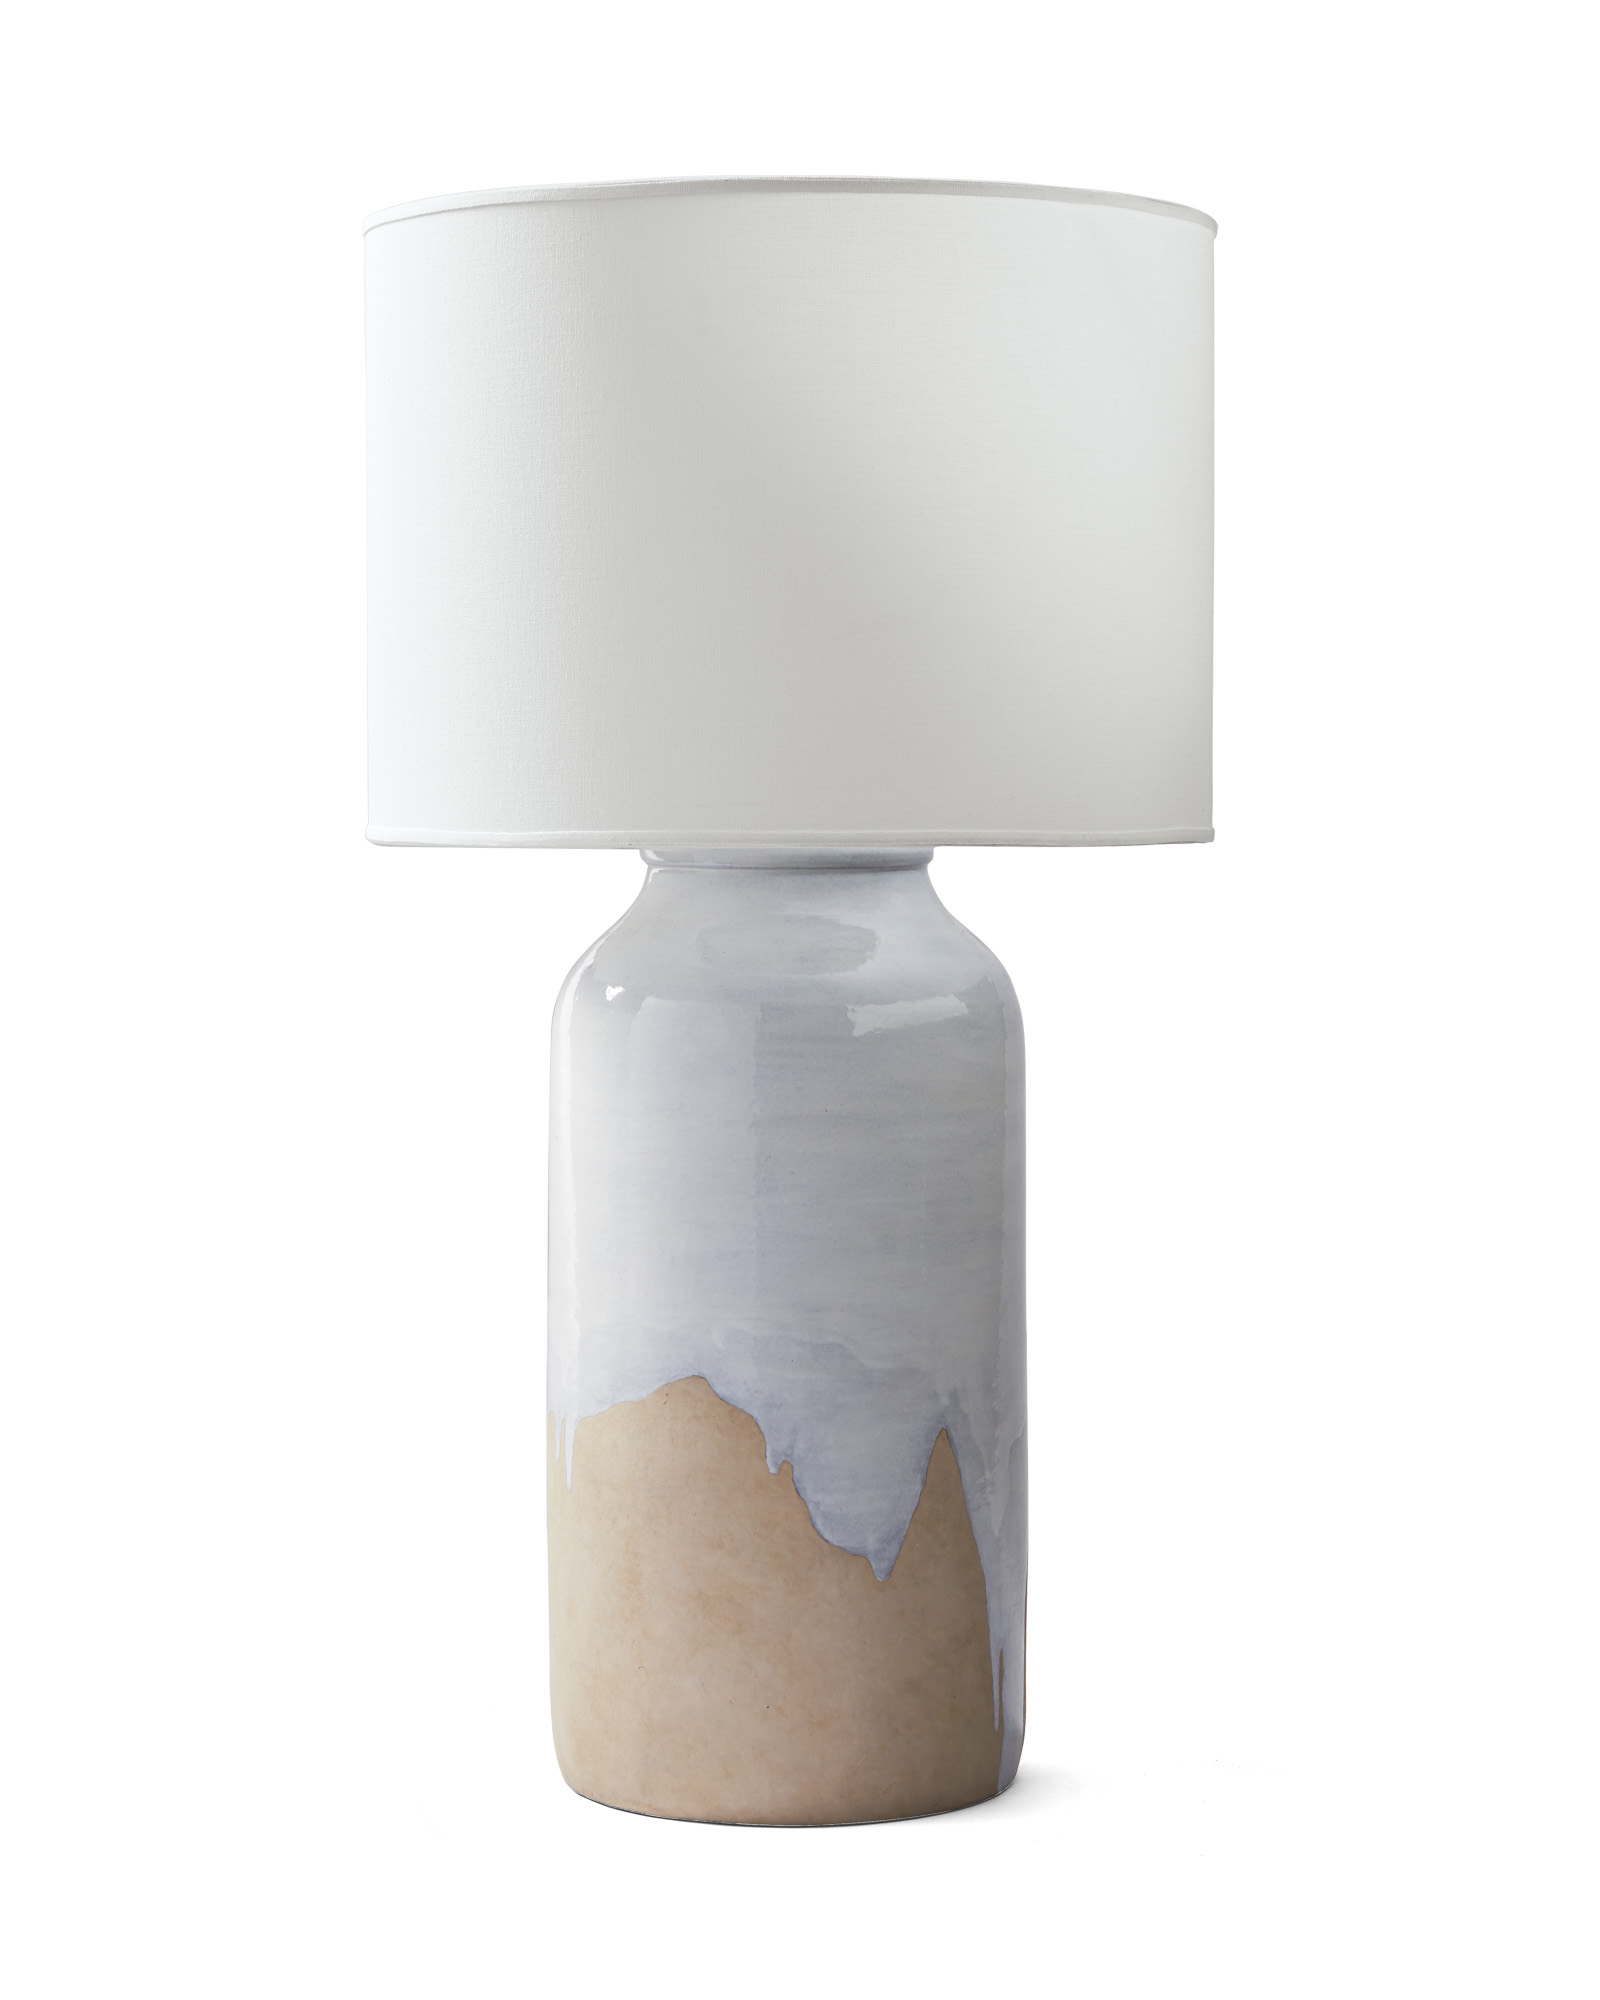 Lighting_Abbey_Table_Lamp_MV_Crop_SH.jpg